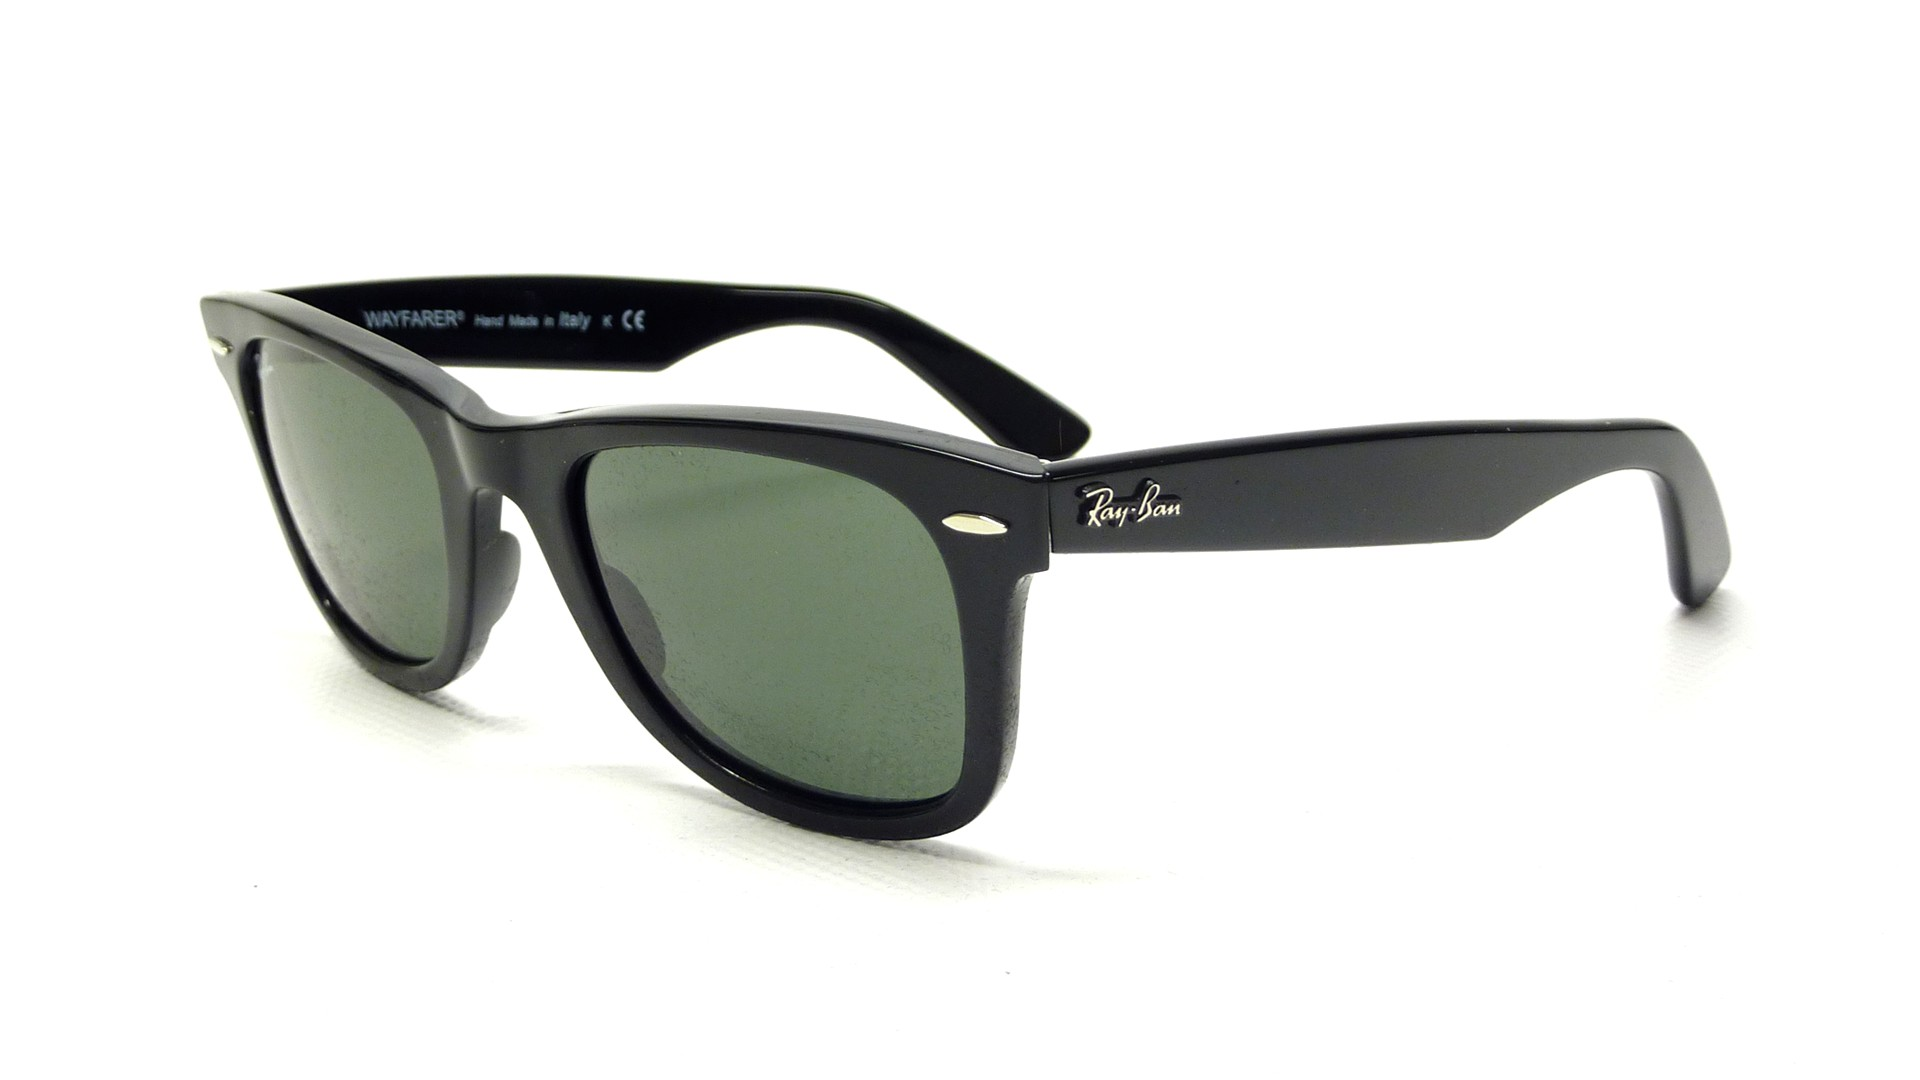 Sunglasses Ray-Ban Original Wayfarer Black RB2140 901 50-22 Medium 8624ea9a41253